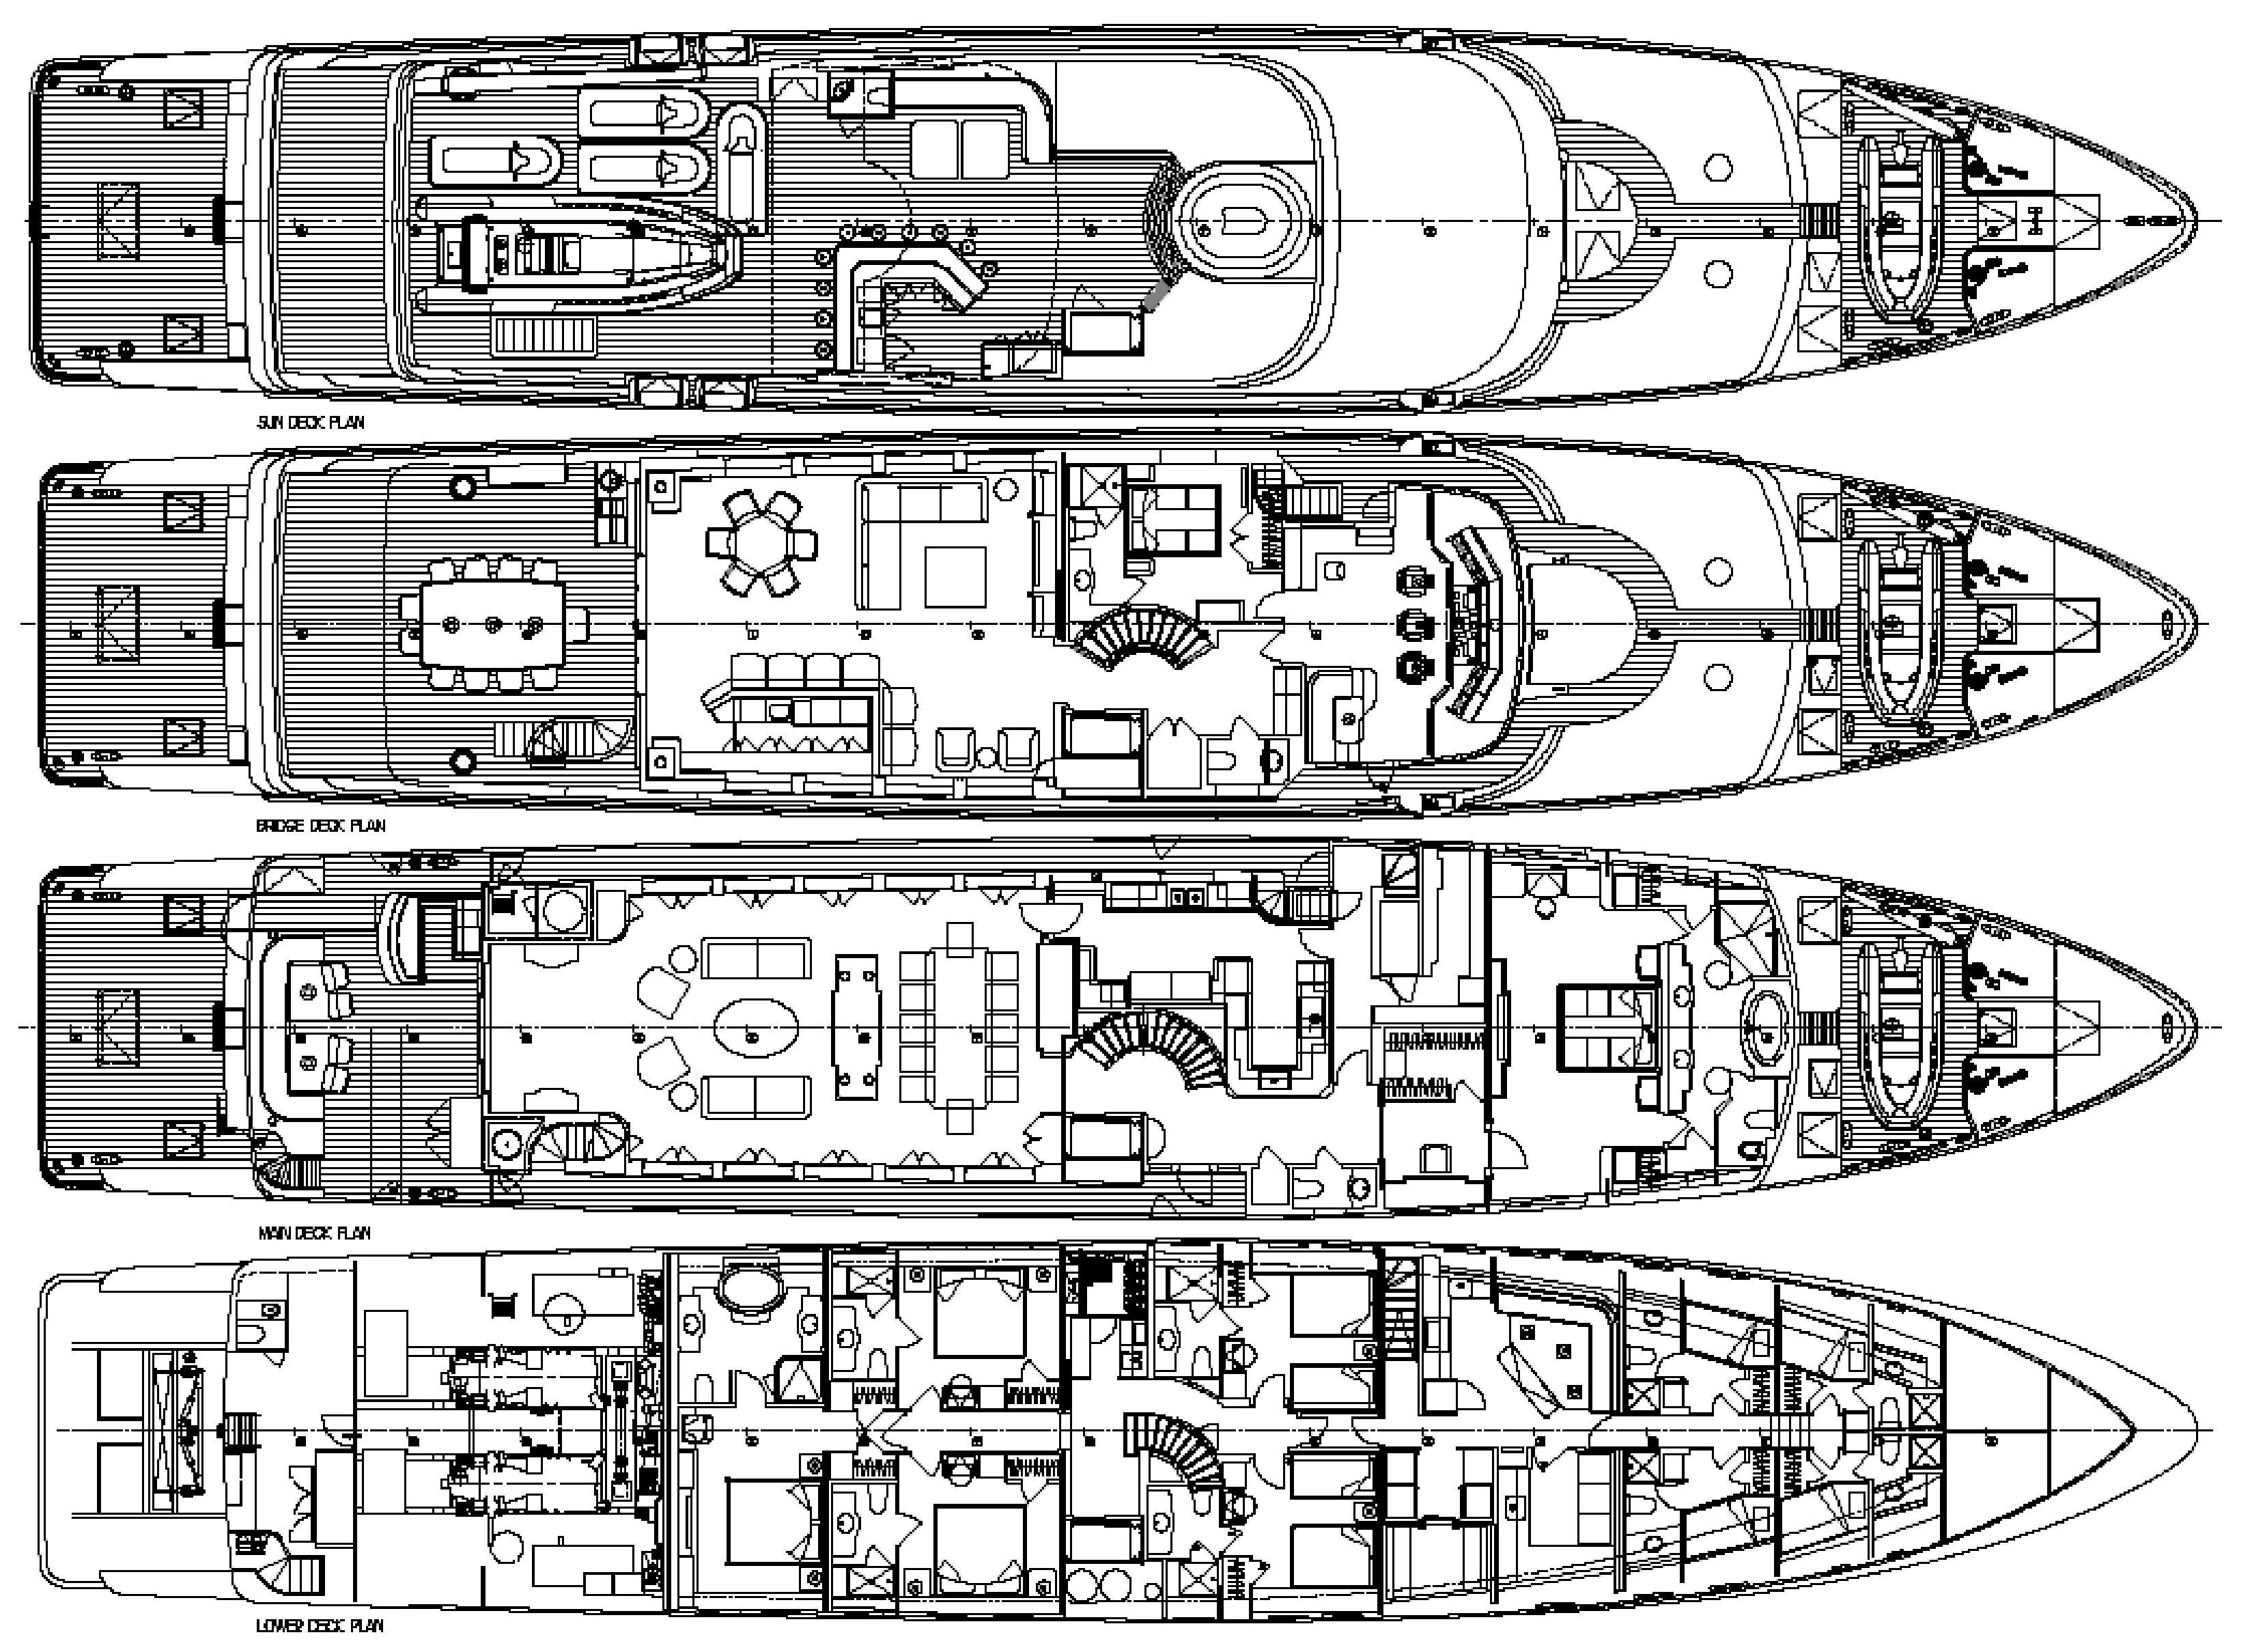 Christensen image gallery layout helm station luxury for The world deck plans